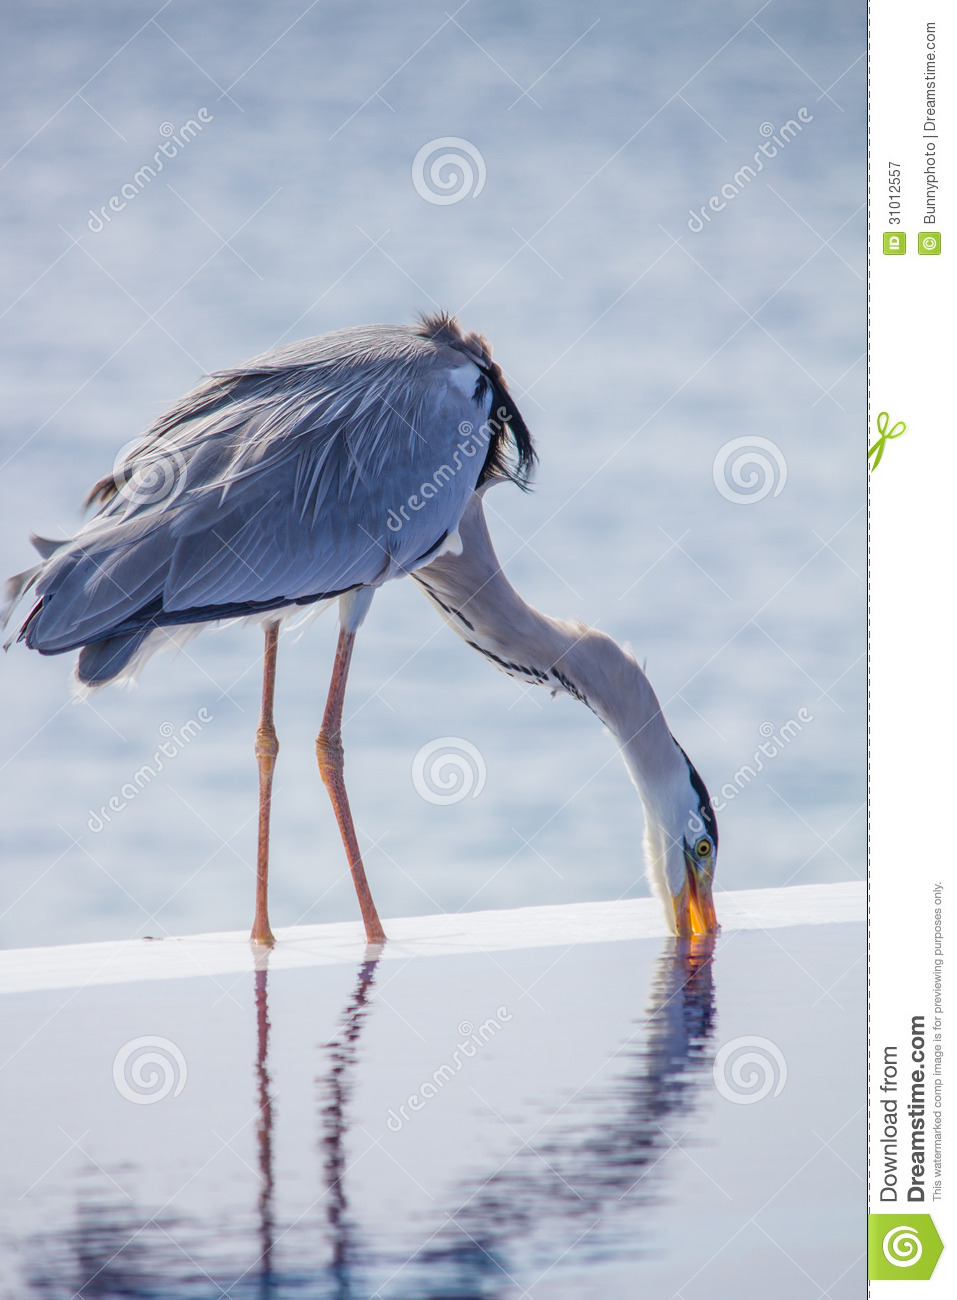 Grey heron royalty free stock photography image 31012557 How to make swimming pool water drinkable